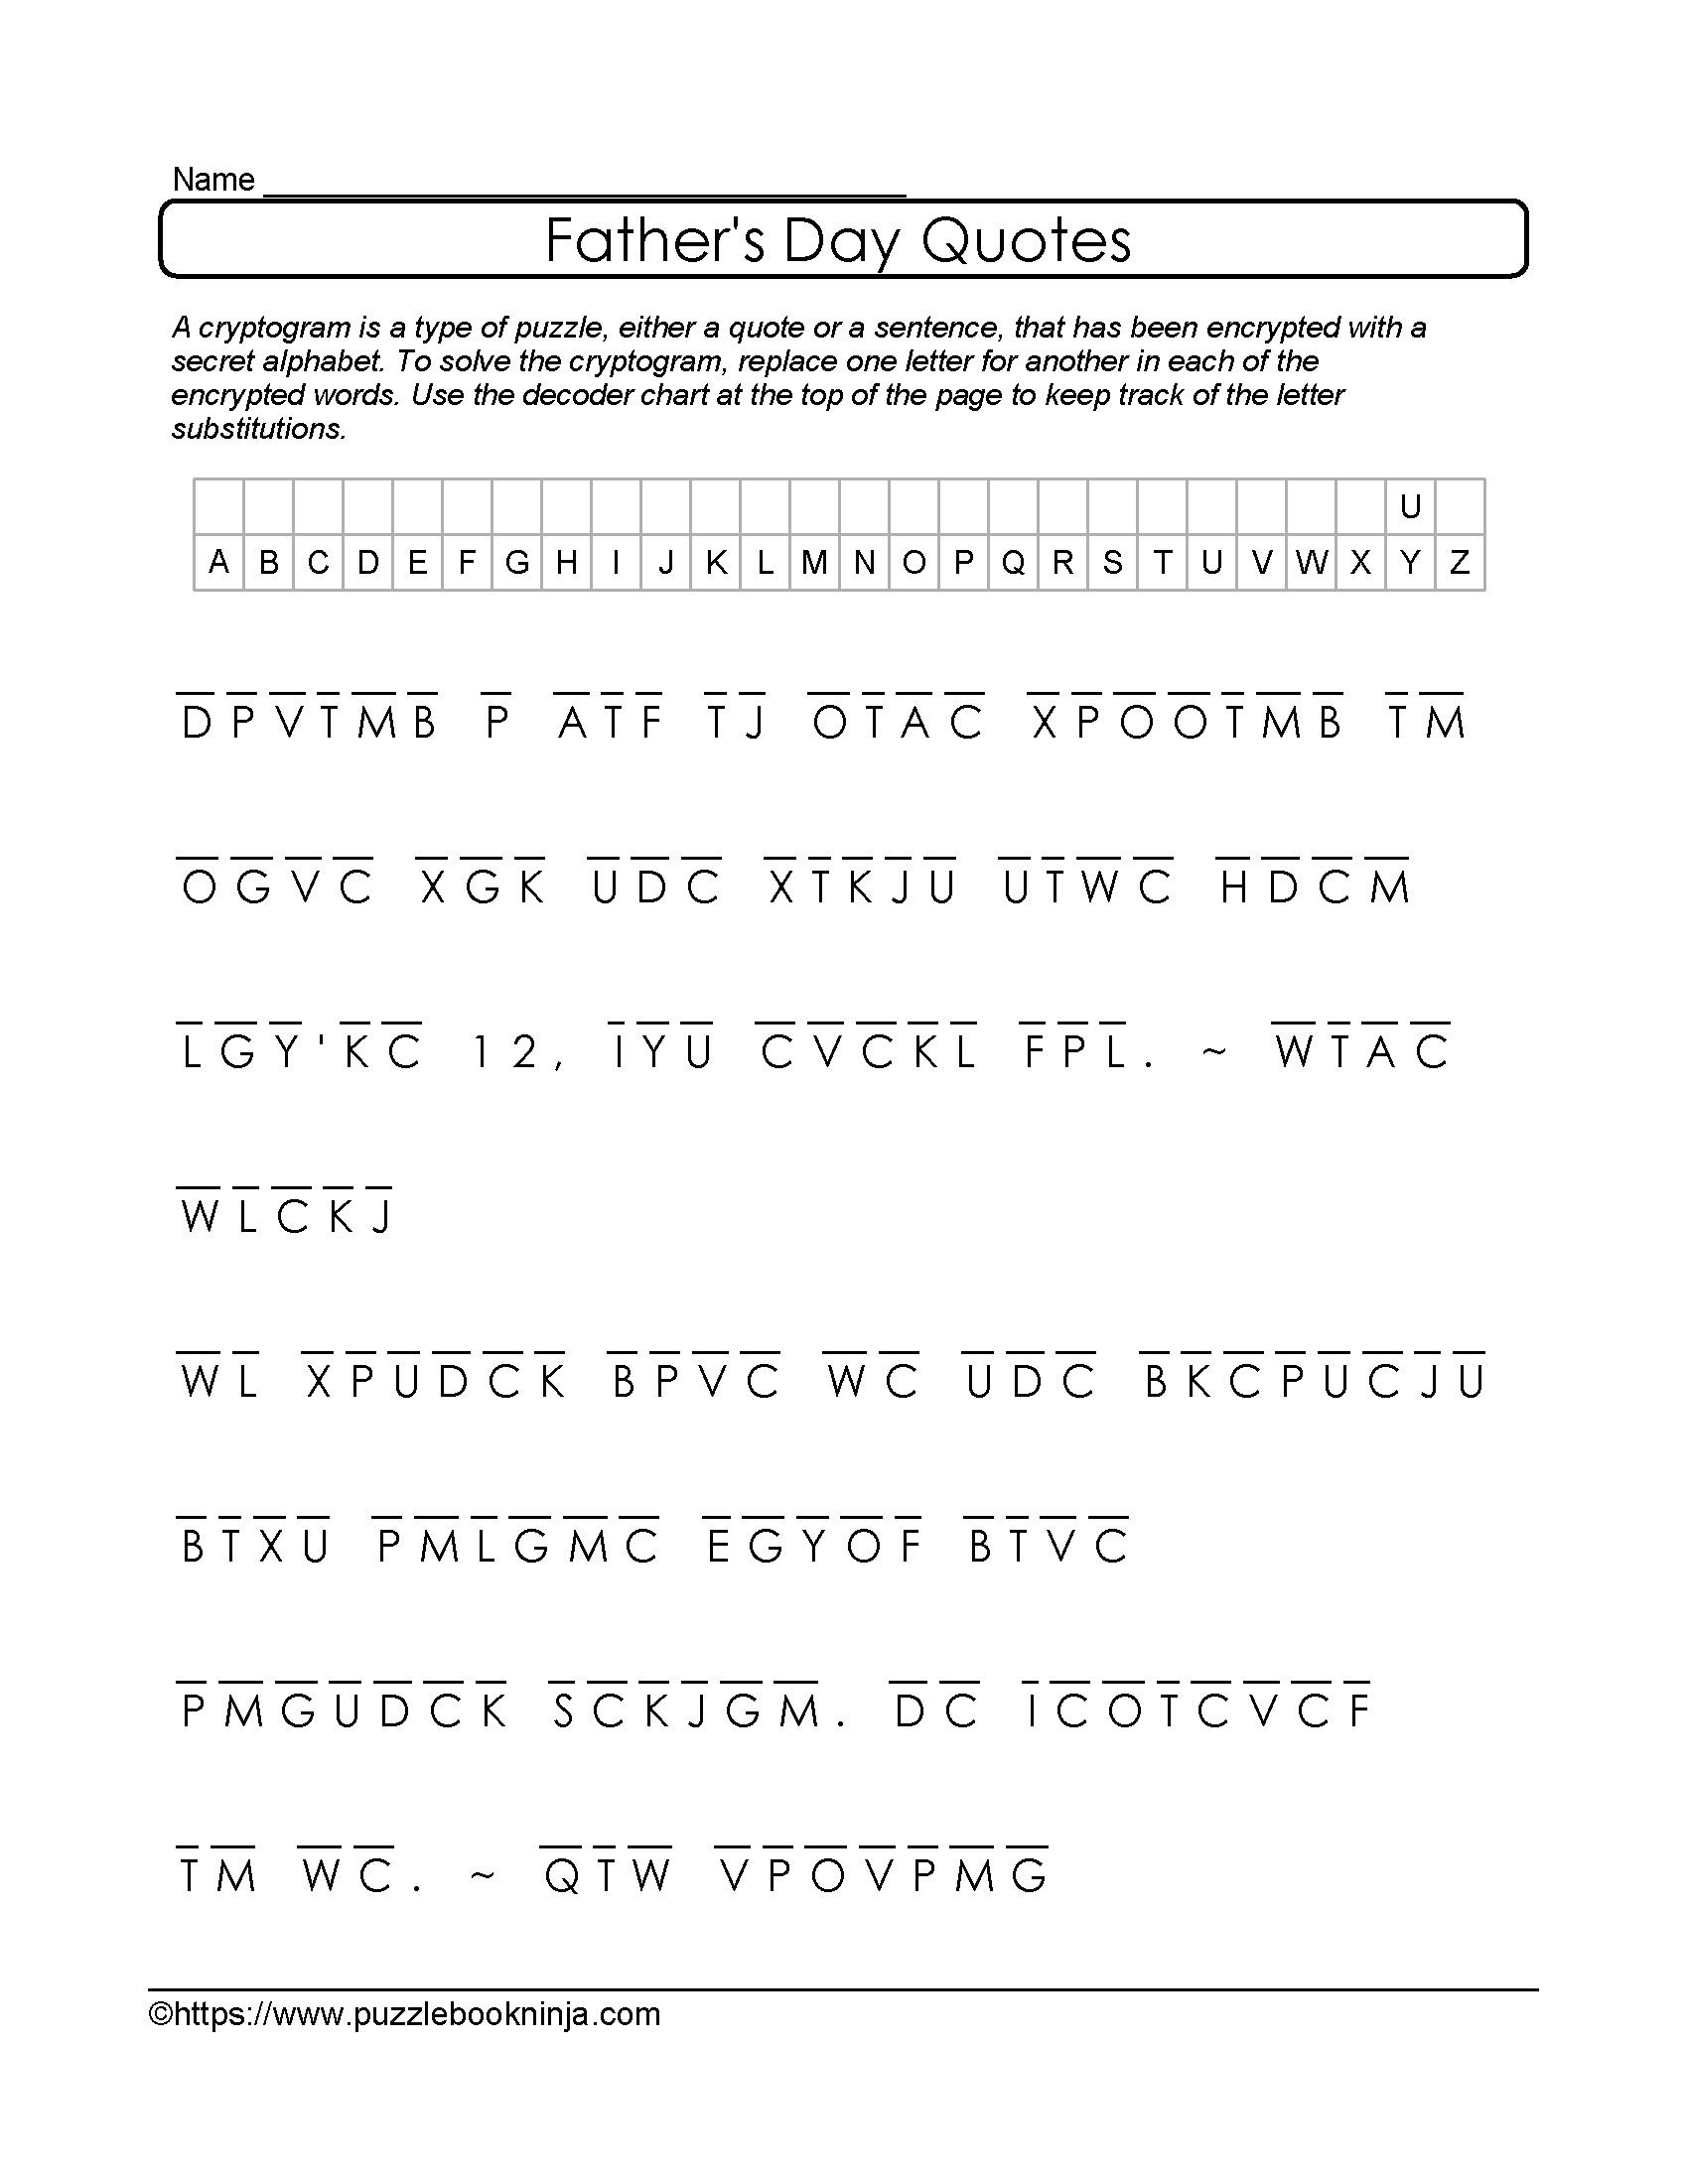 Free And Printable Father's Day Cryptogram. Quotes About Dad - Free Printable Cryptograms